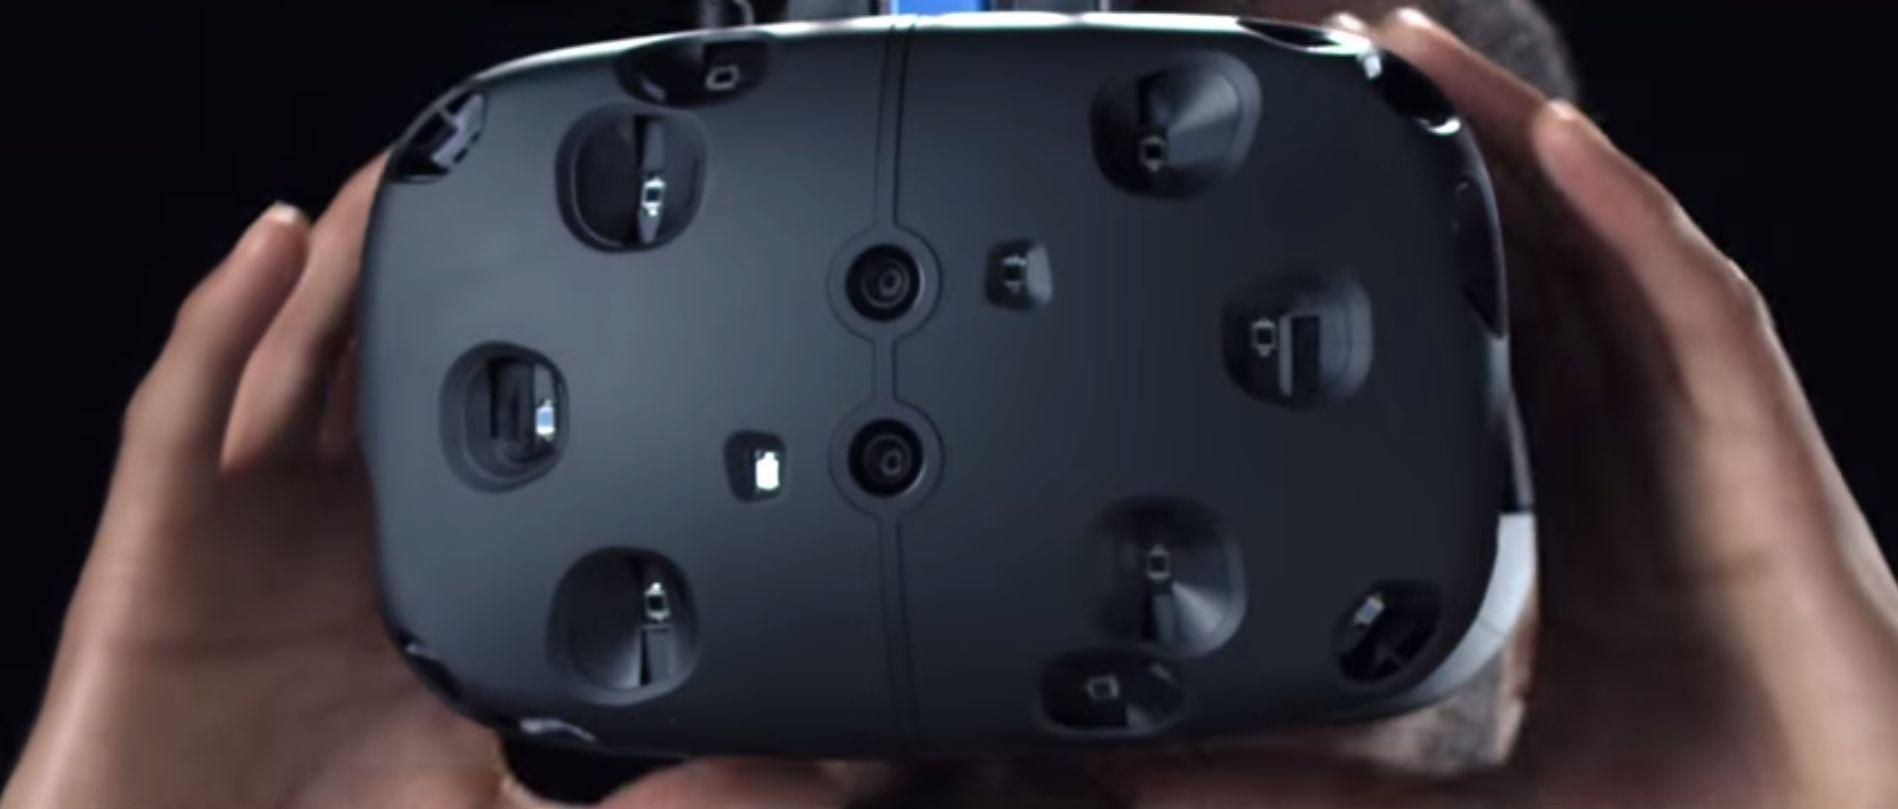 Valve and HTC Reveal Vive VR Headset